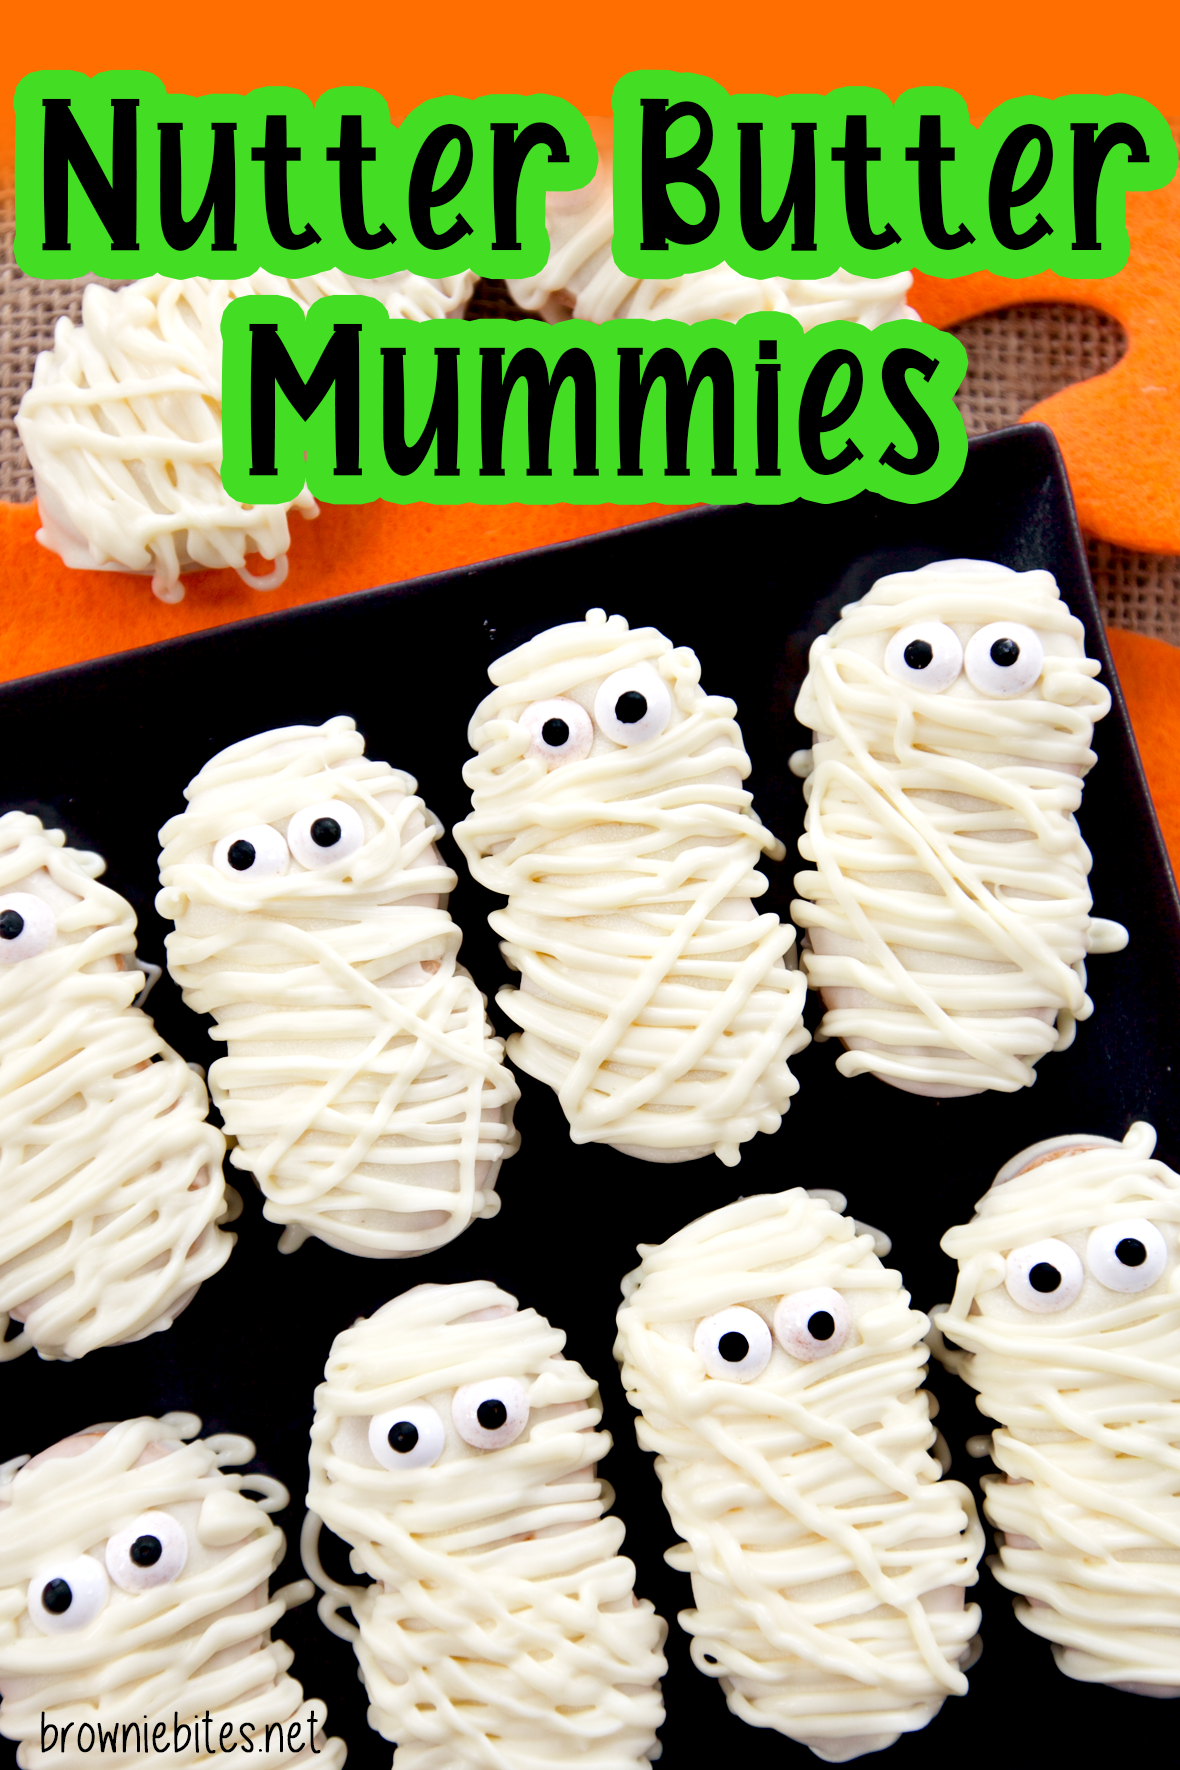 An image of cute Nutter Butter mummies with text for Pinterest